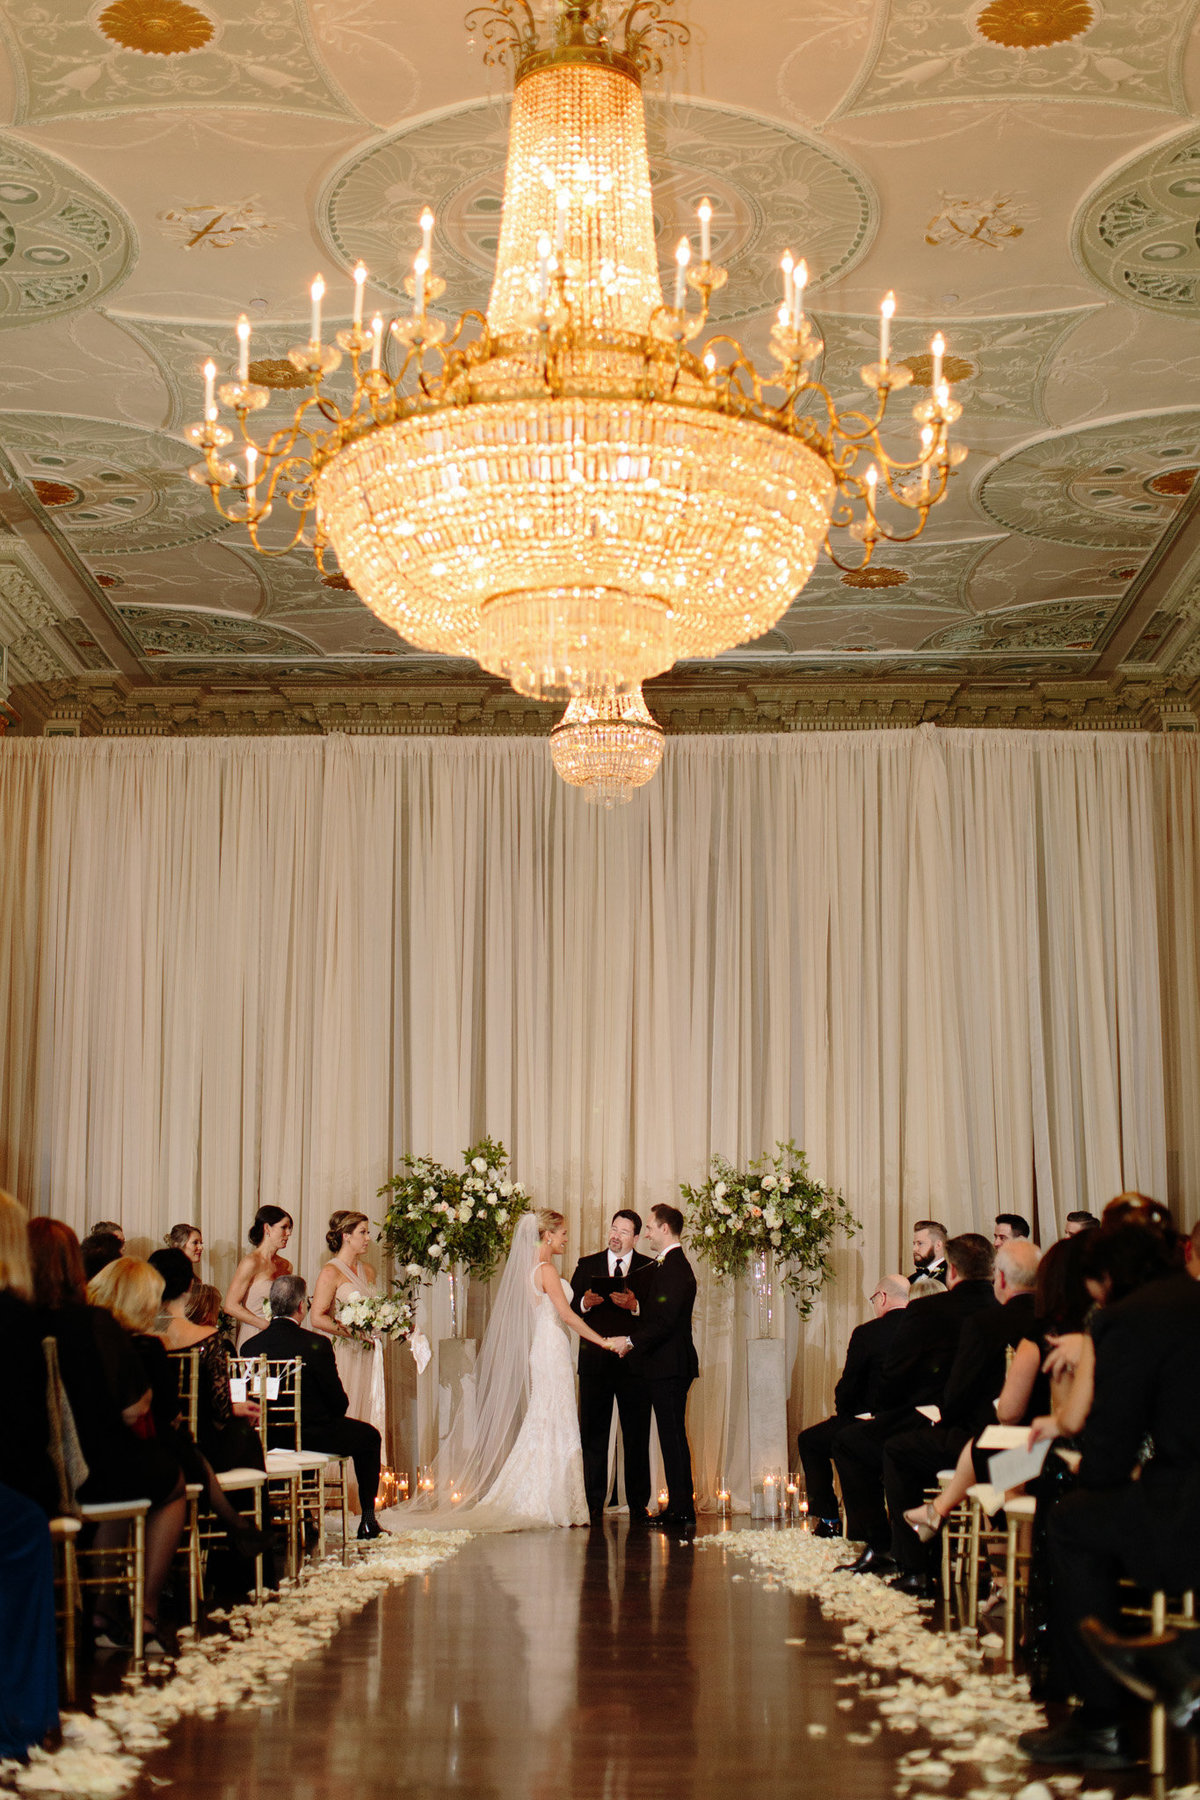 Wedding ceremony at the Biltmore Ballrooms, photo by Rebecca Cerasani.